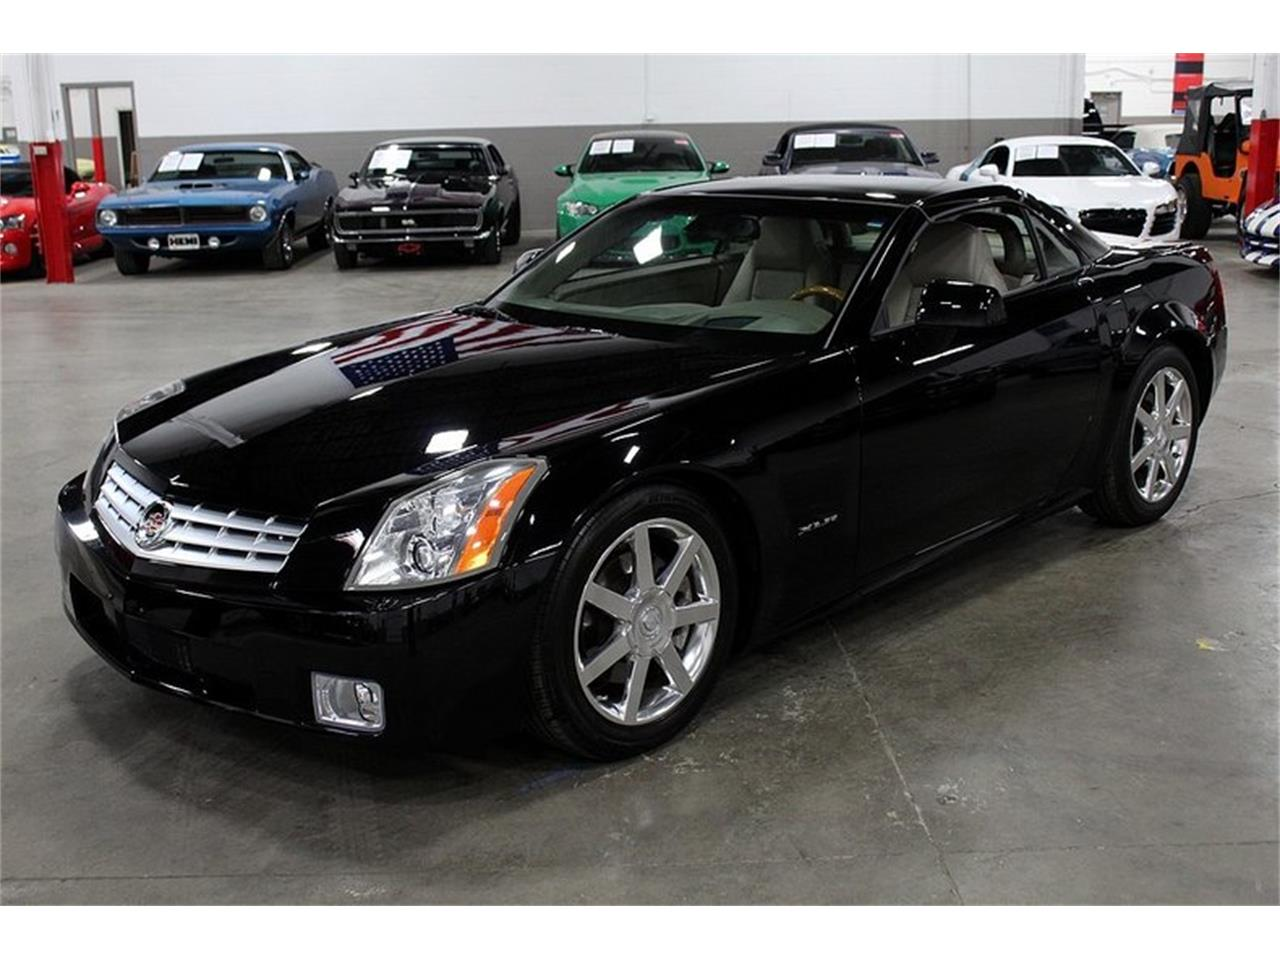 2004 Cadillac XLR for sale in Kentwood, MI – photo 66